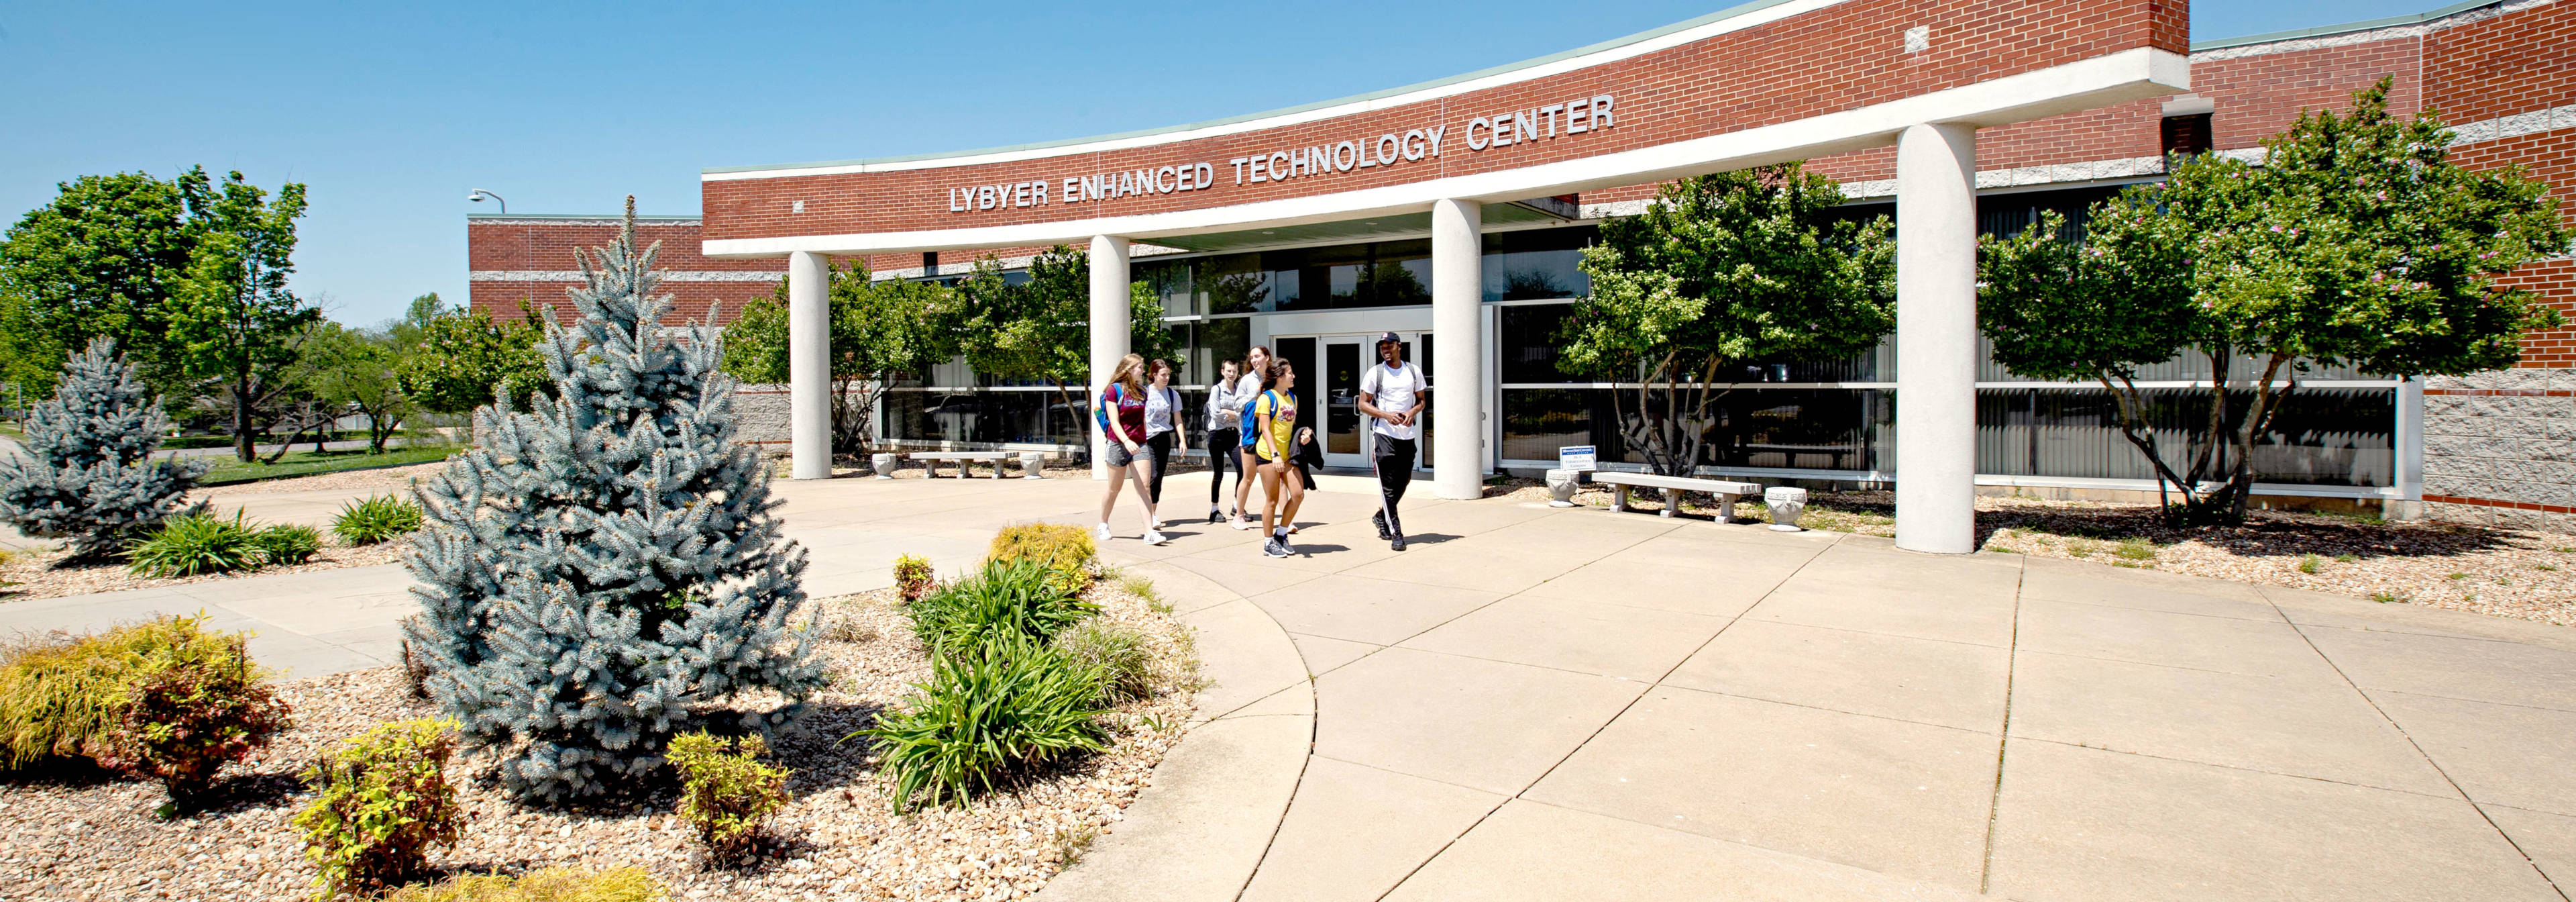 Students in early Summer in front of the Lybyer technology building